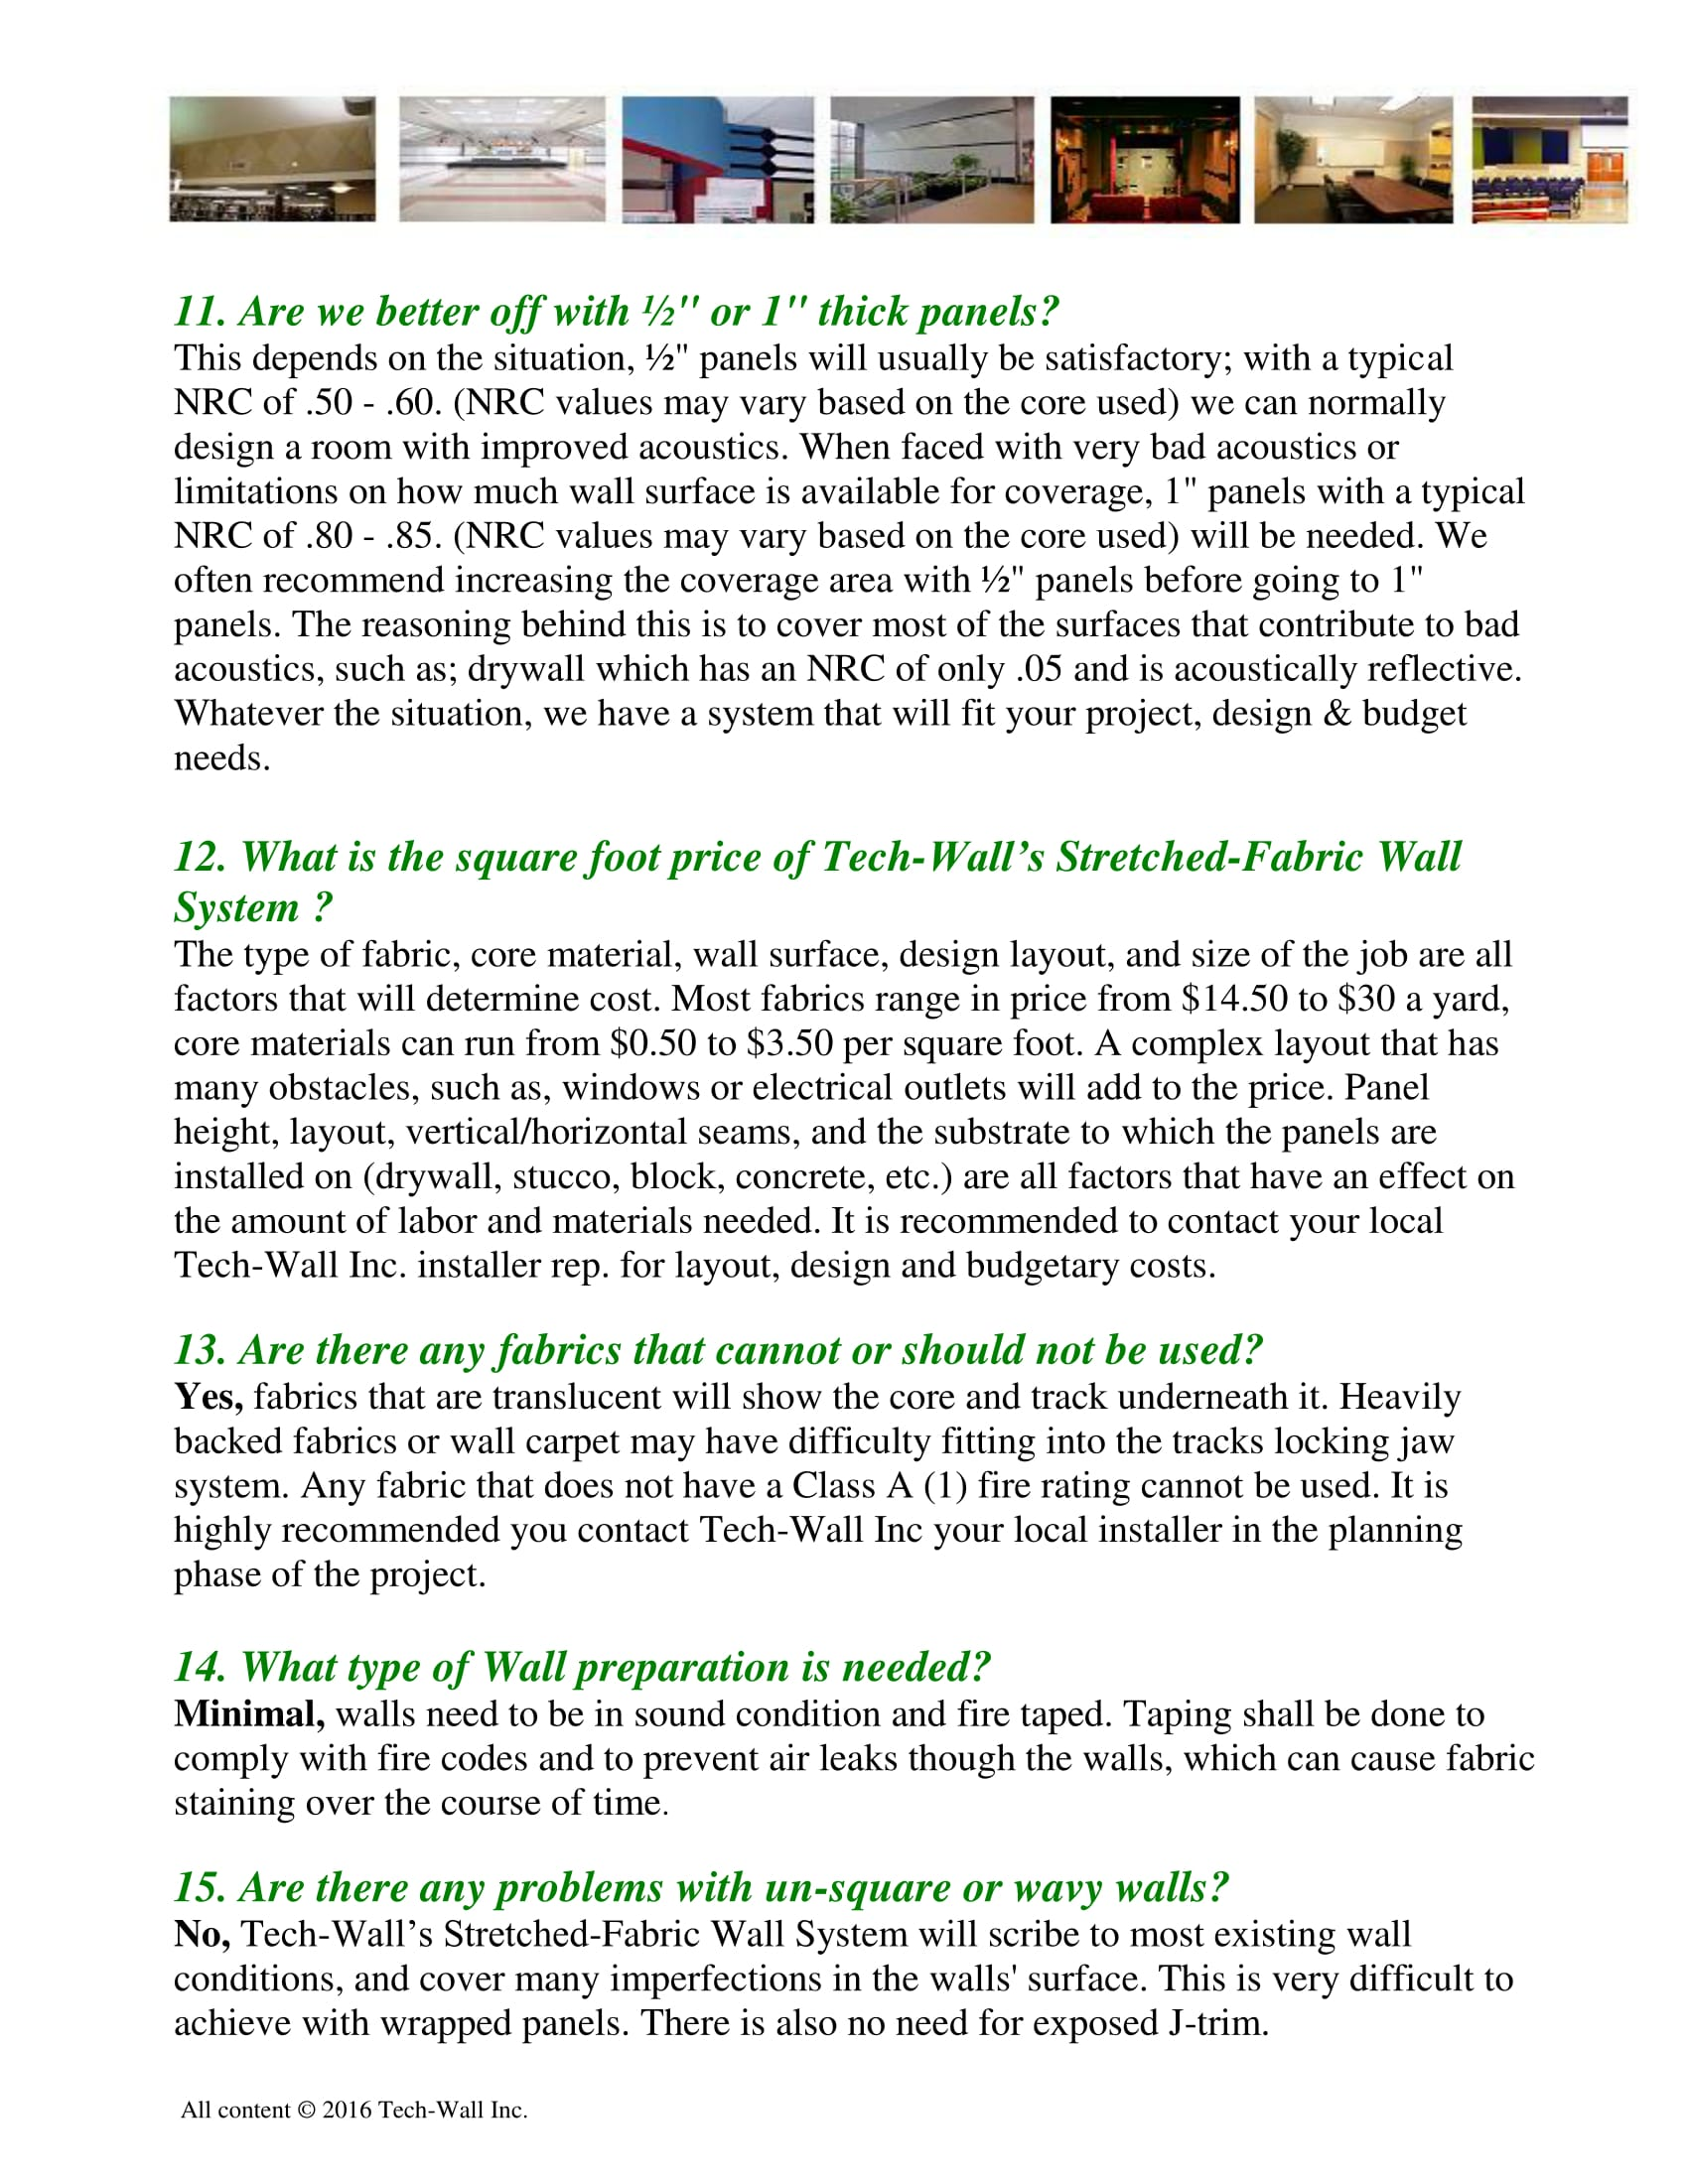 frequently-asked-questions-3-pages-3.jpg